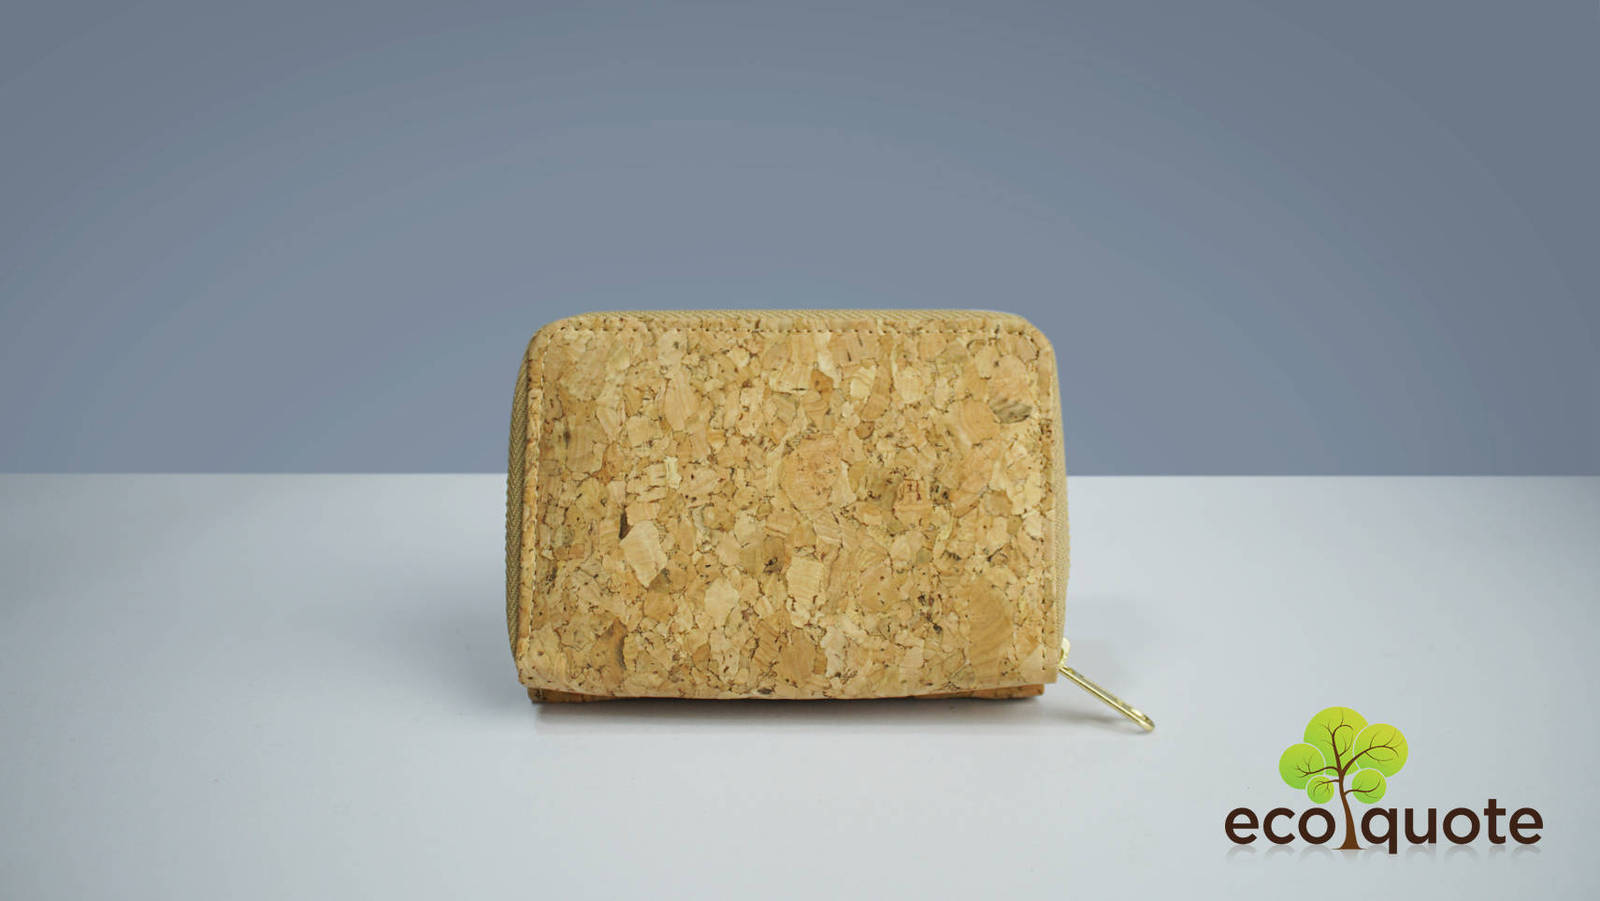 EcoQuote Compact Wallet Handmade Cork Material Eco Friendly great for Vegan